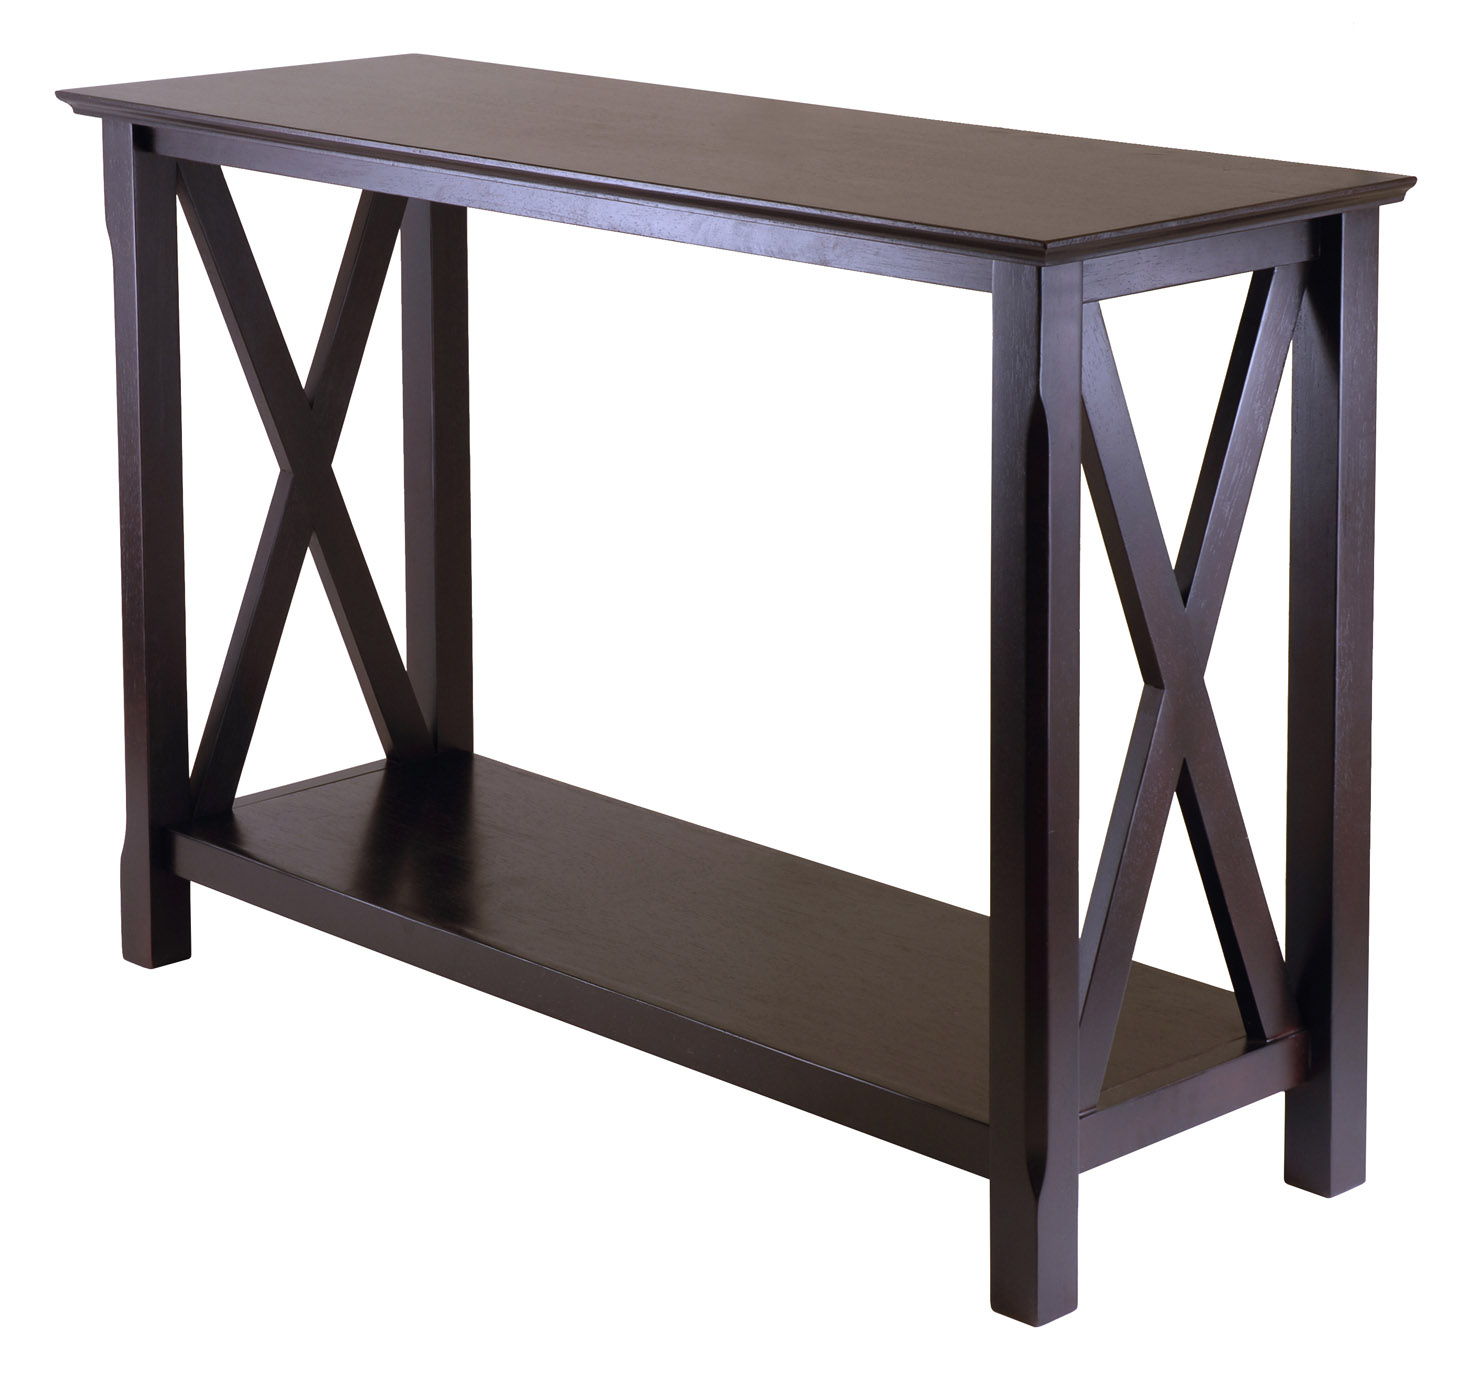 Image of: Details about Modern foyer table